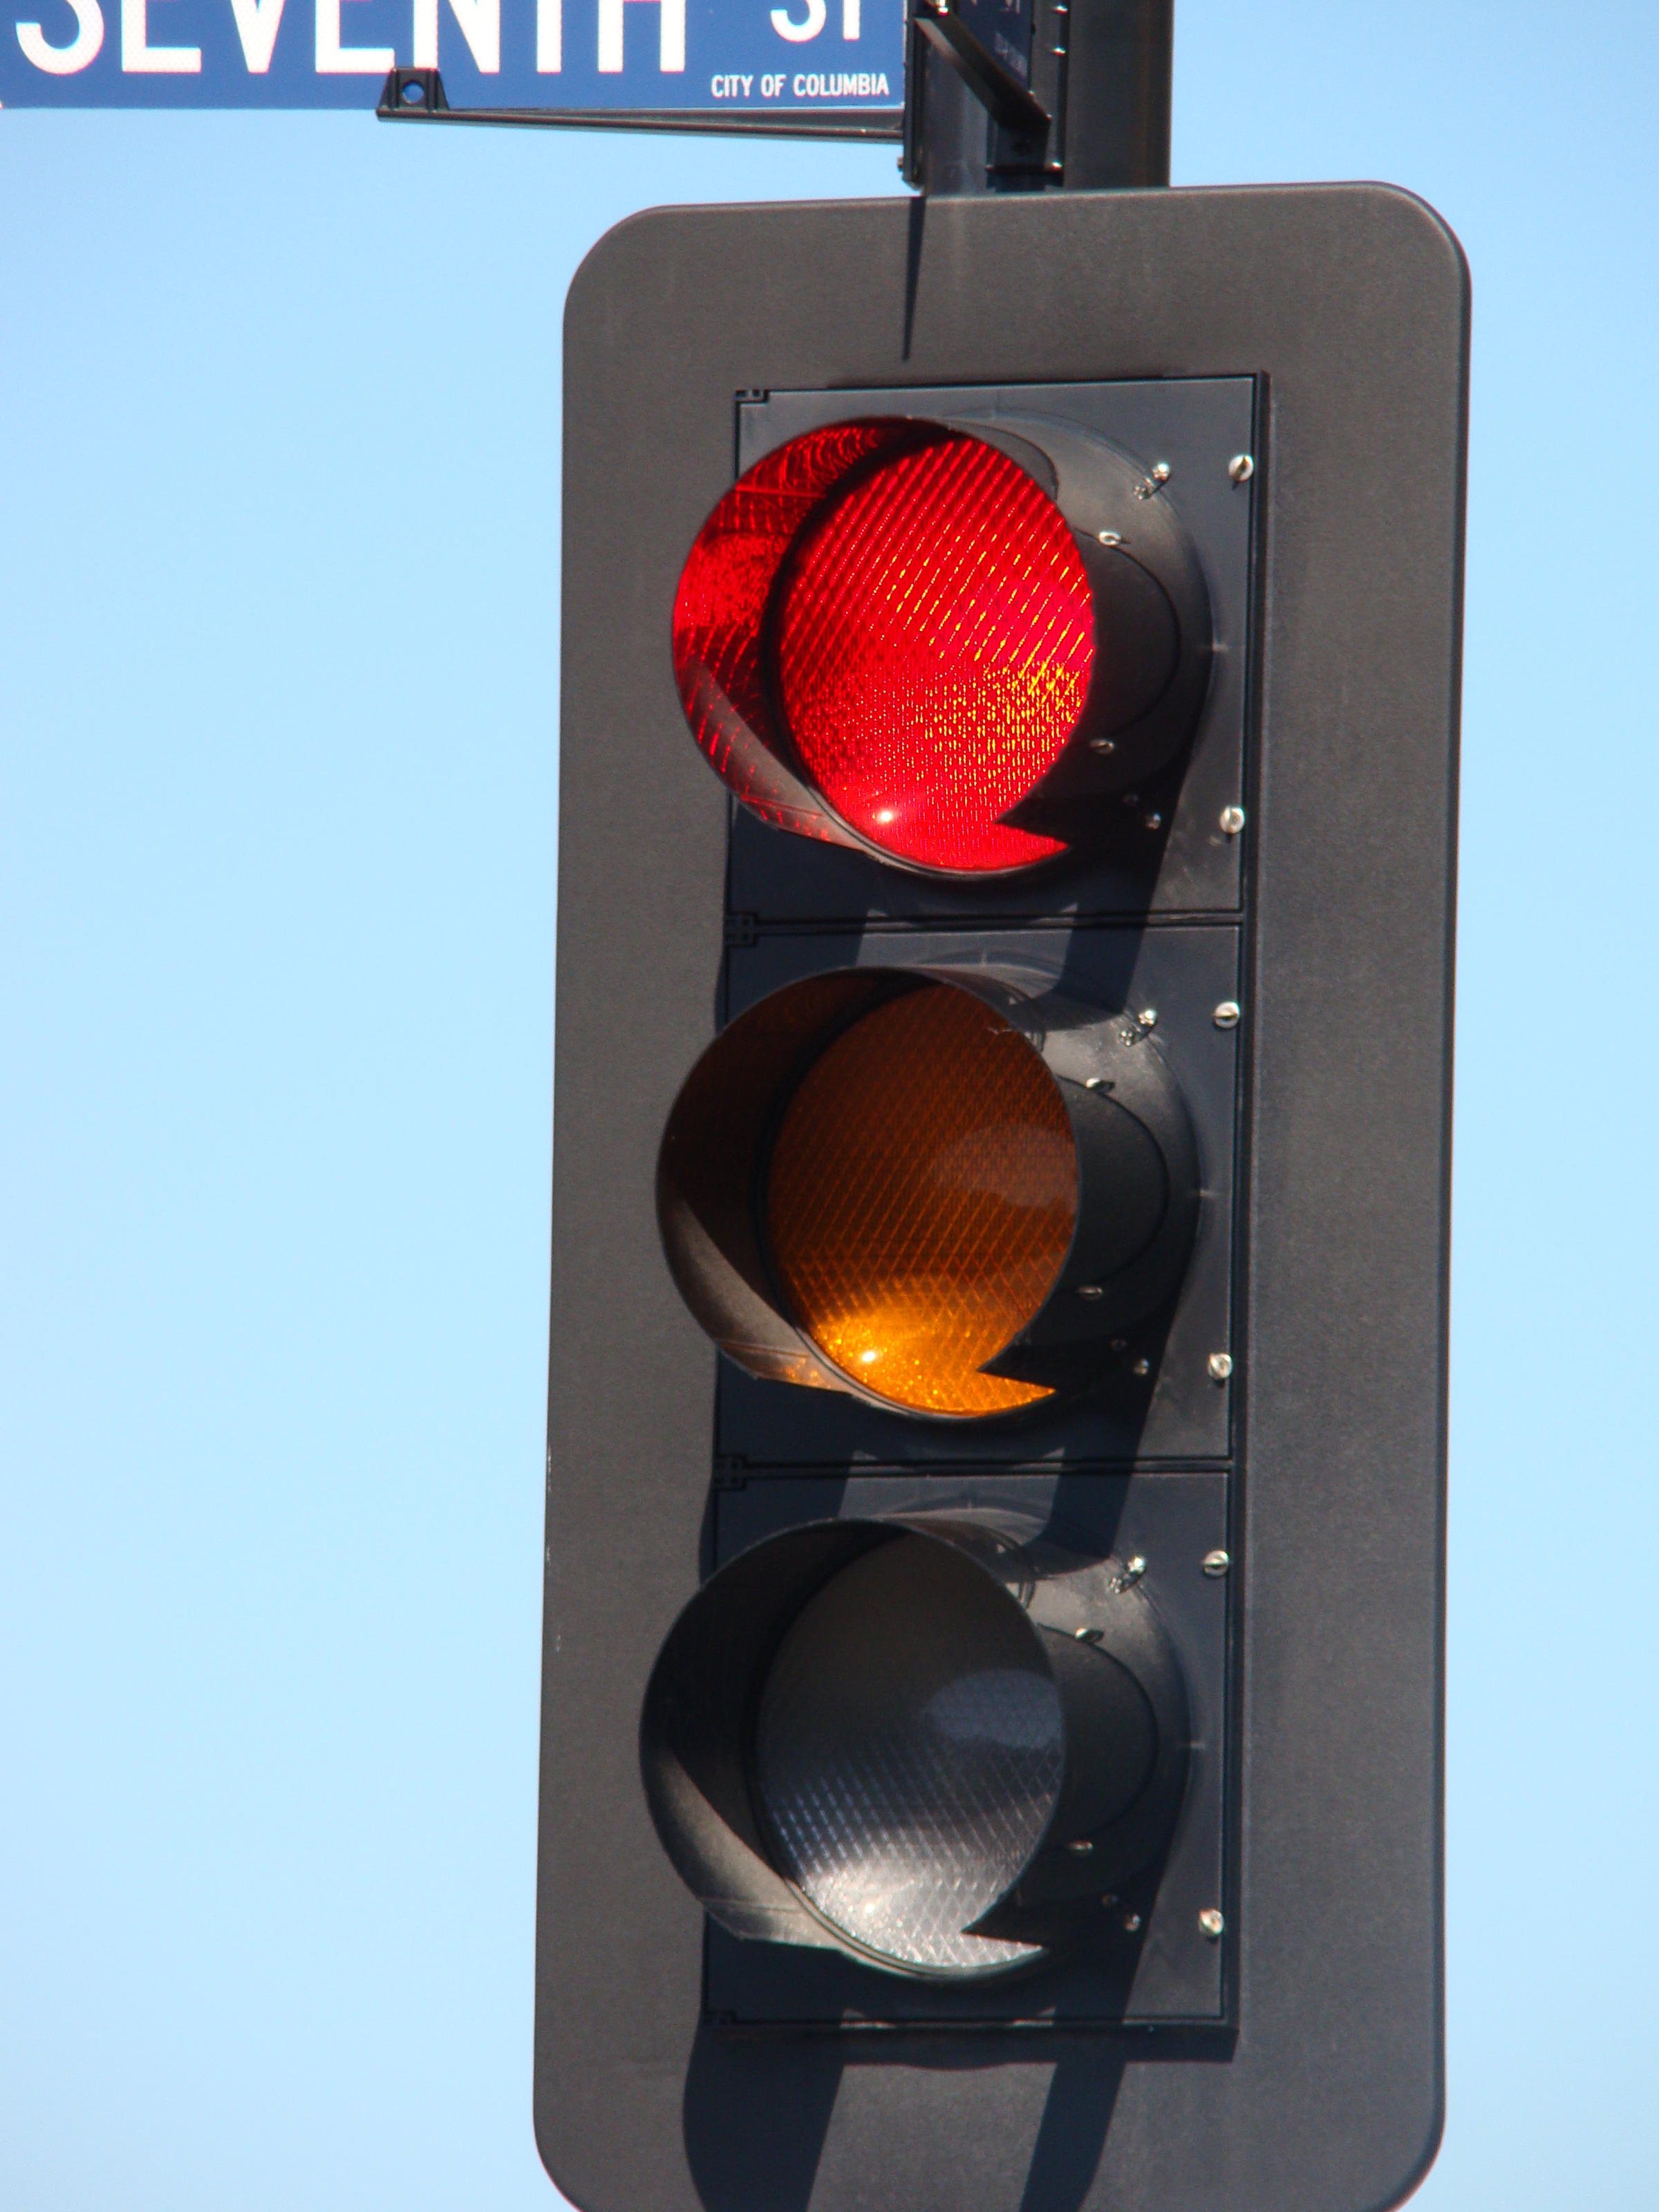 City of Columbia Taking Steps to Bring RedLight Cameras